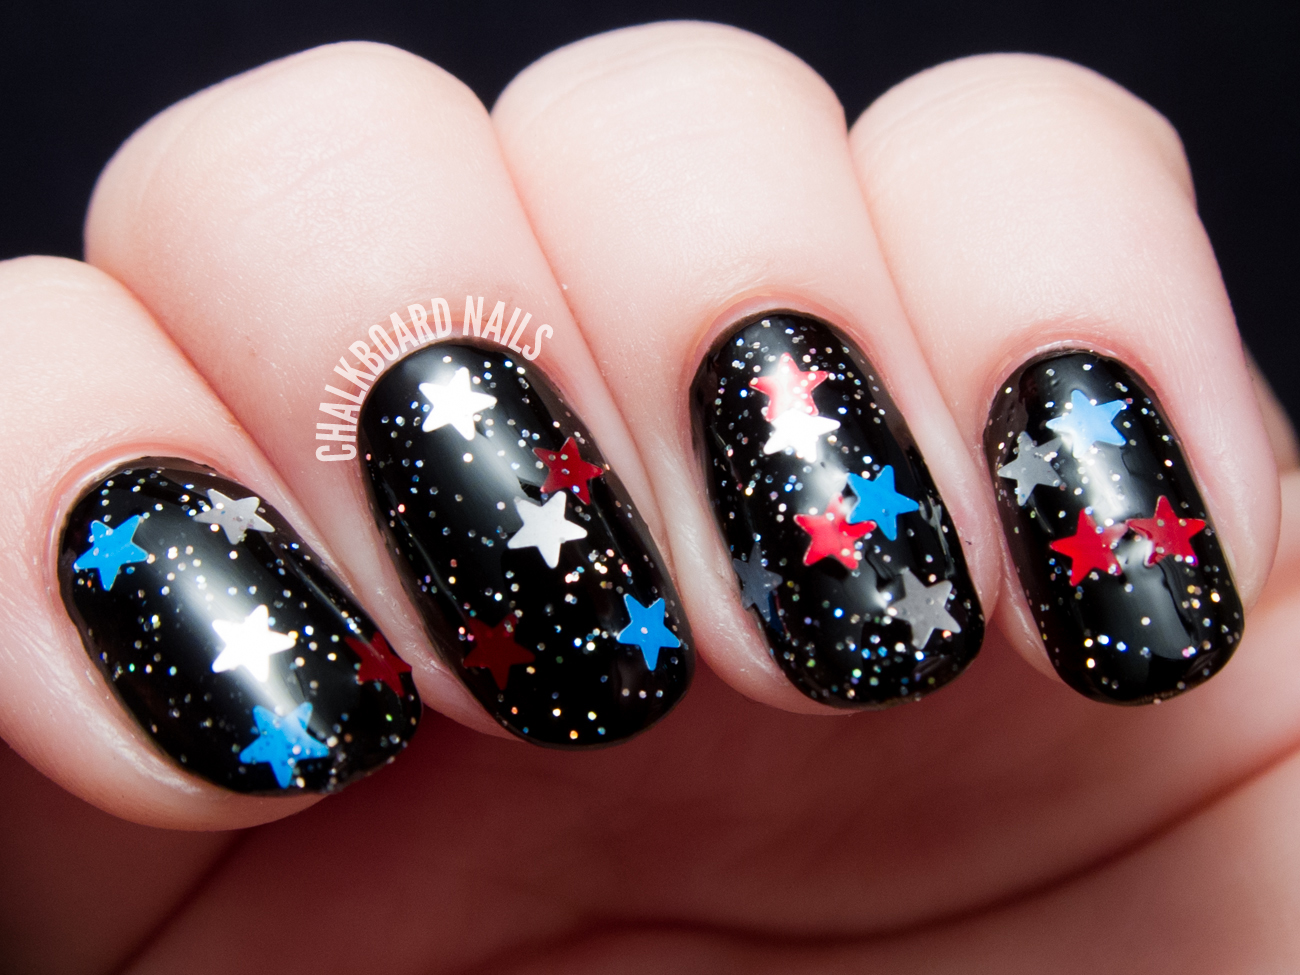 Starred Striped Features Matte Red And White Bar Glitters Blue Stars Its Like A Deconstructed American Flag Lots Of Fun